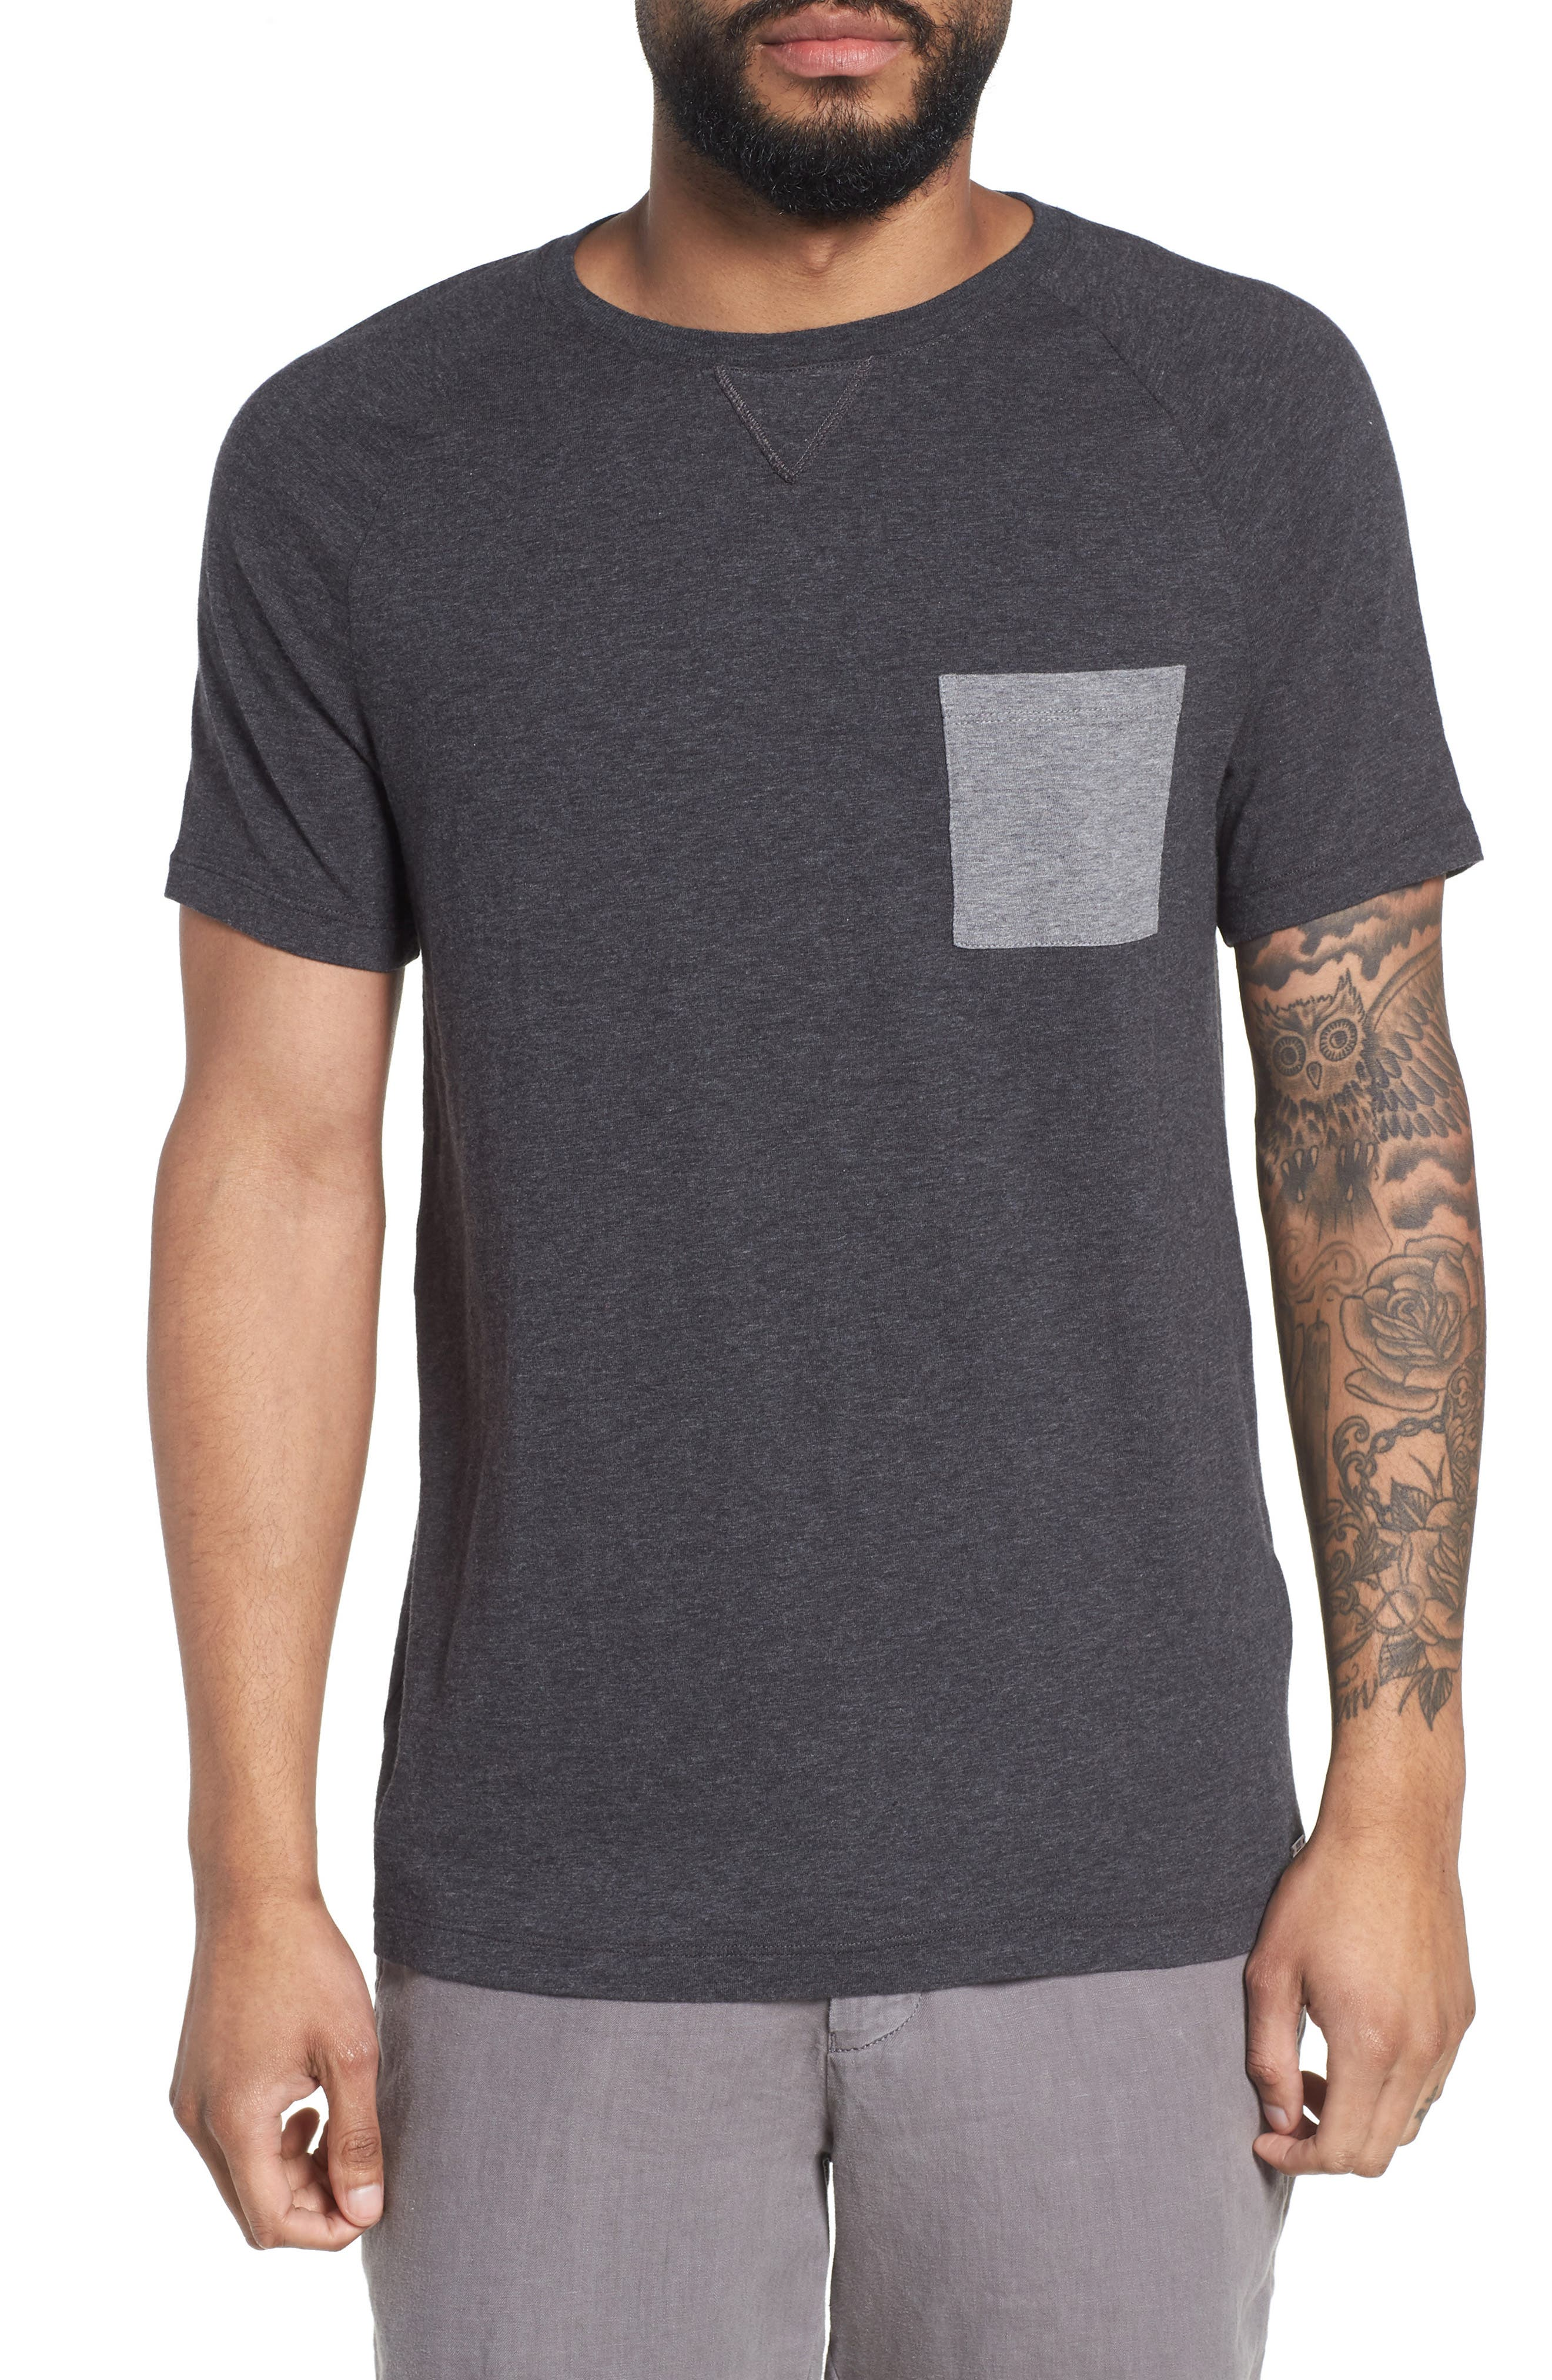 Tessler Slim Fit Pocket T-Shirt,                             Main thumbnail 1, color,                             001